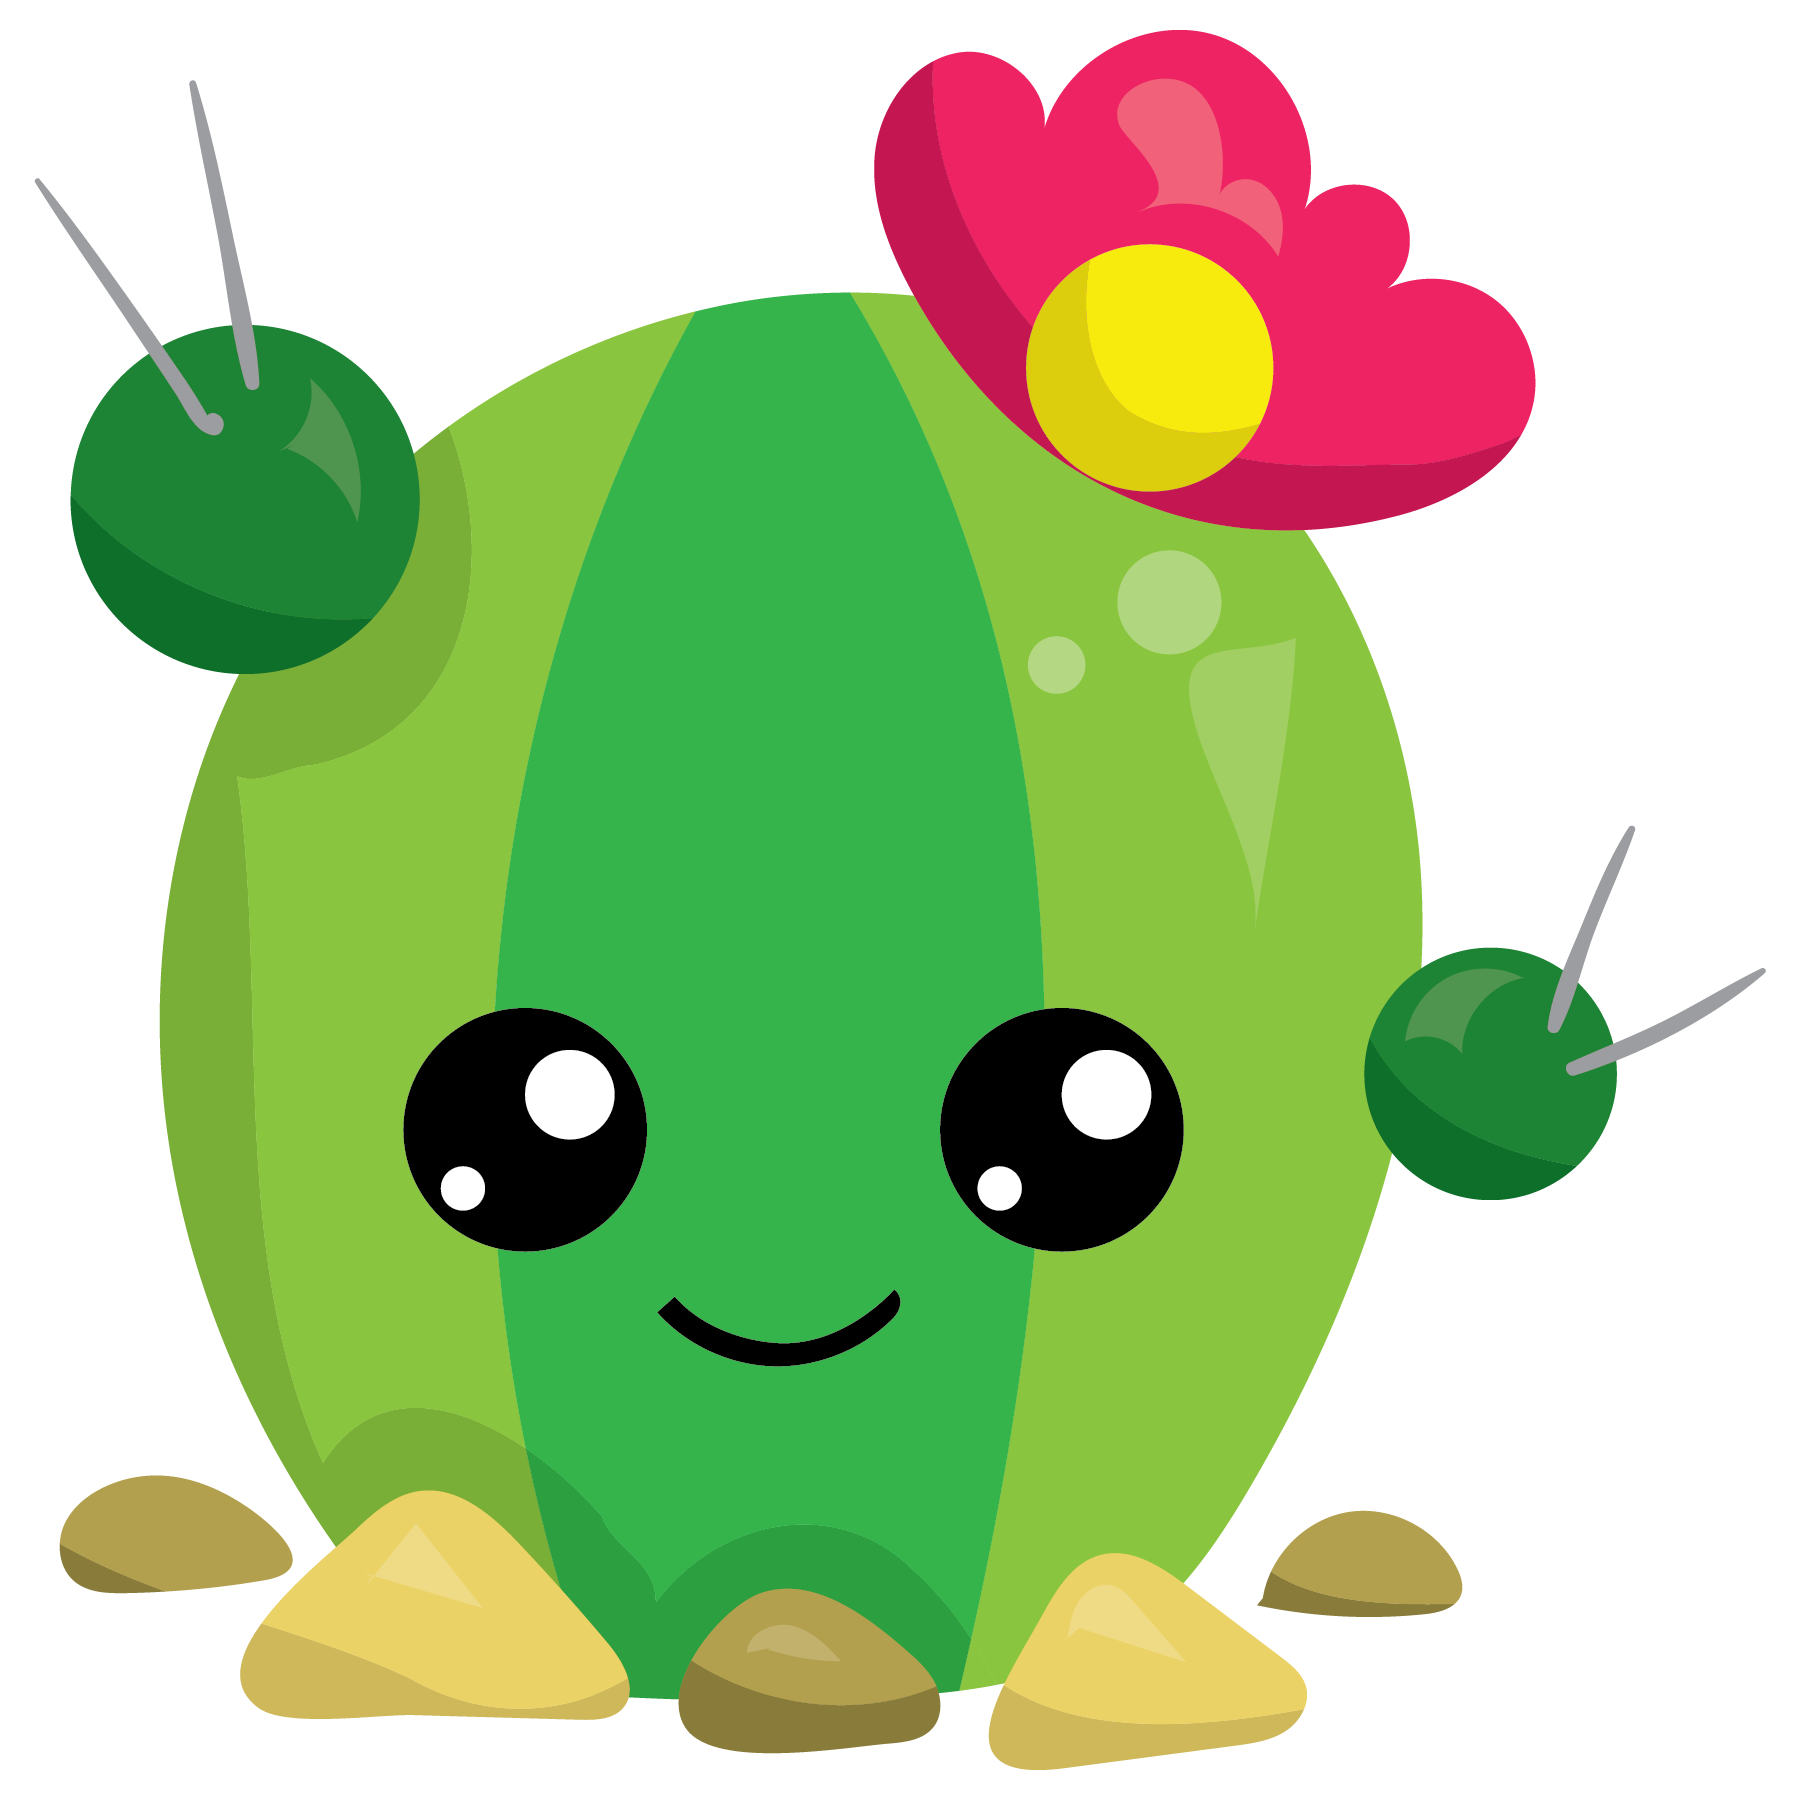 Cute cactus clipart. Growing with flower